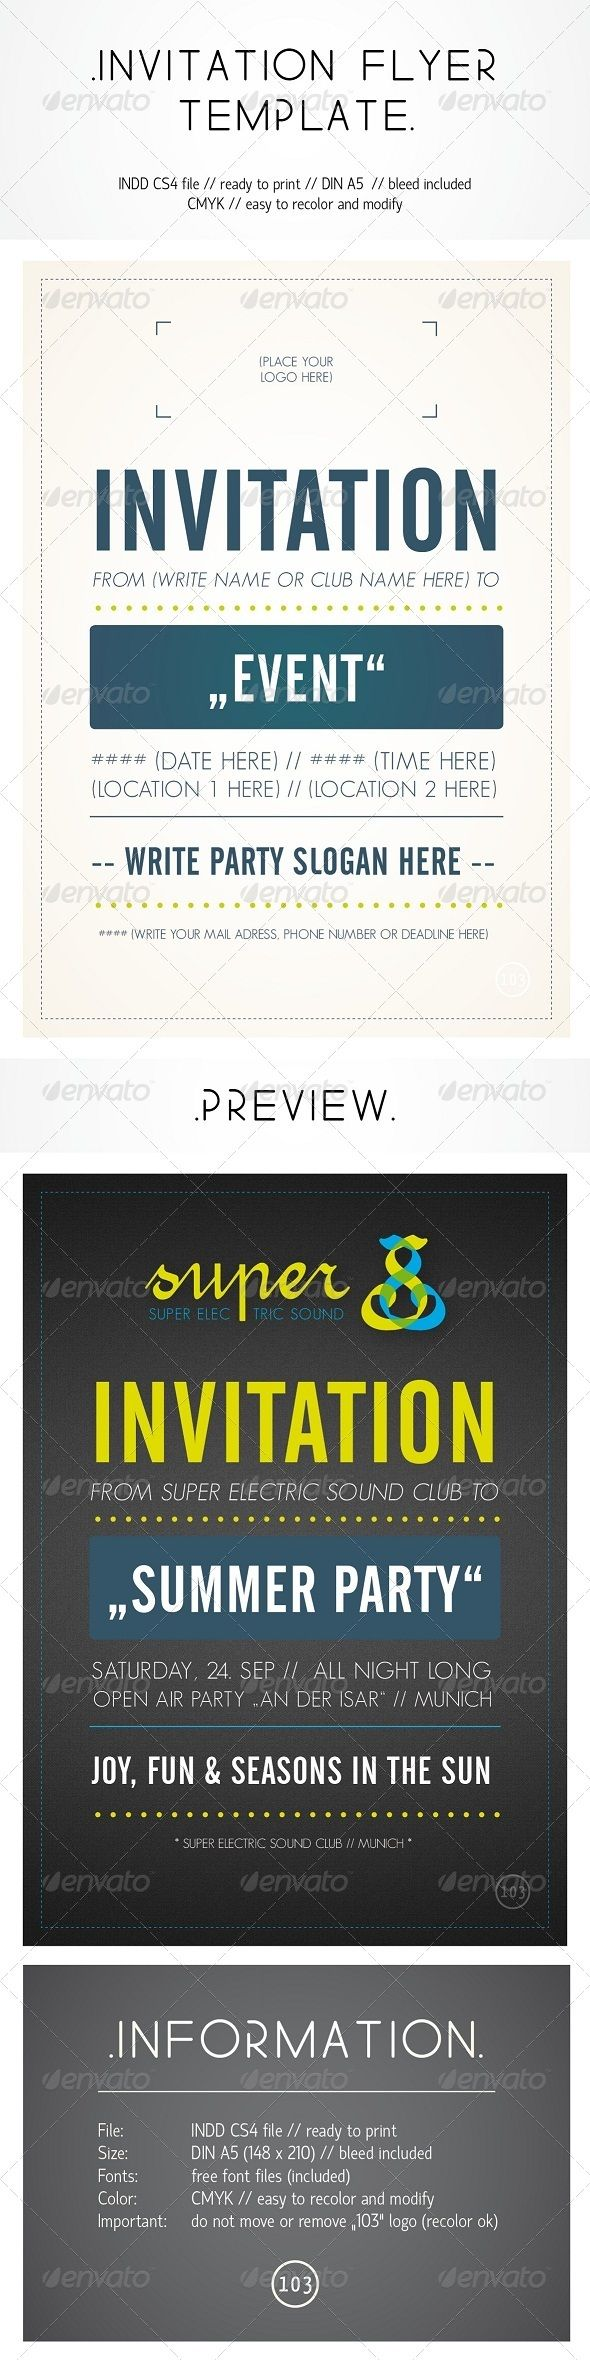 7 best invitation flyers images on pinterest flyer template invitation flyer template stopboris Images